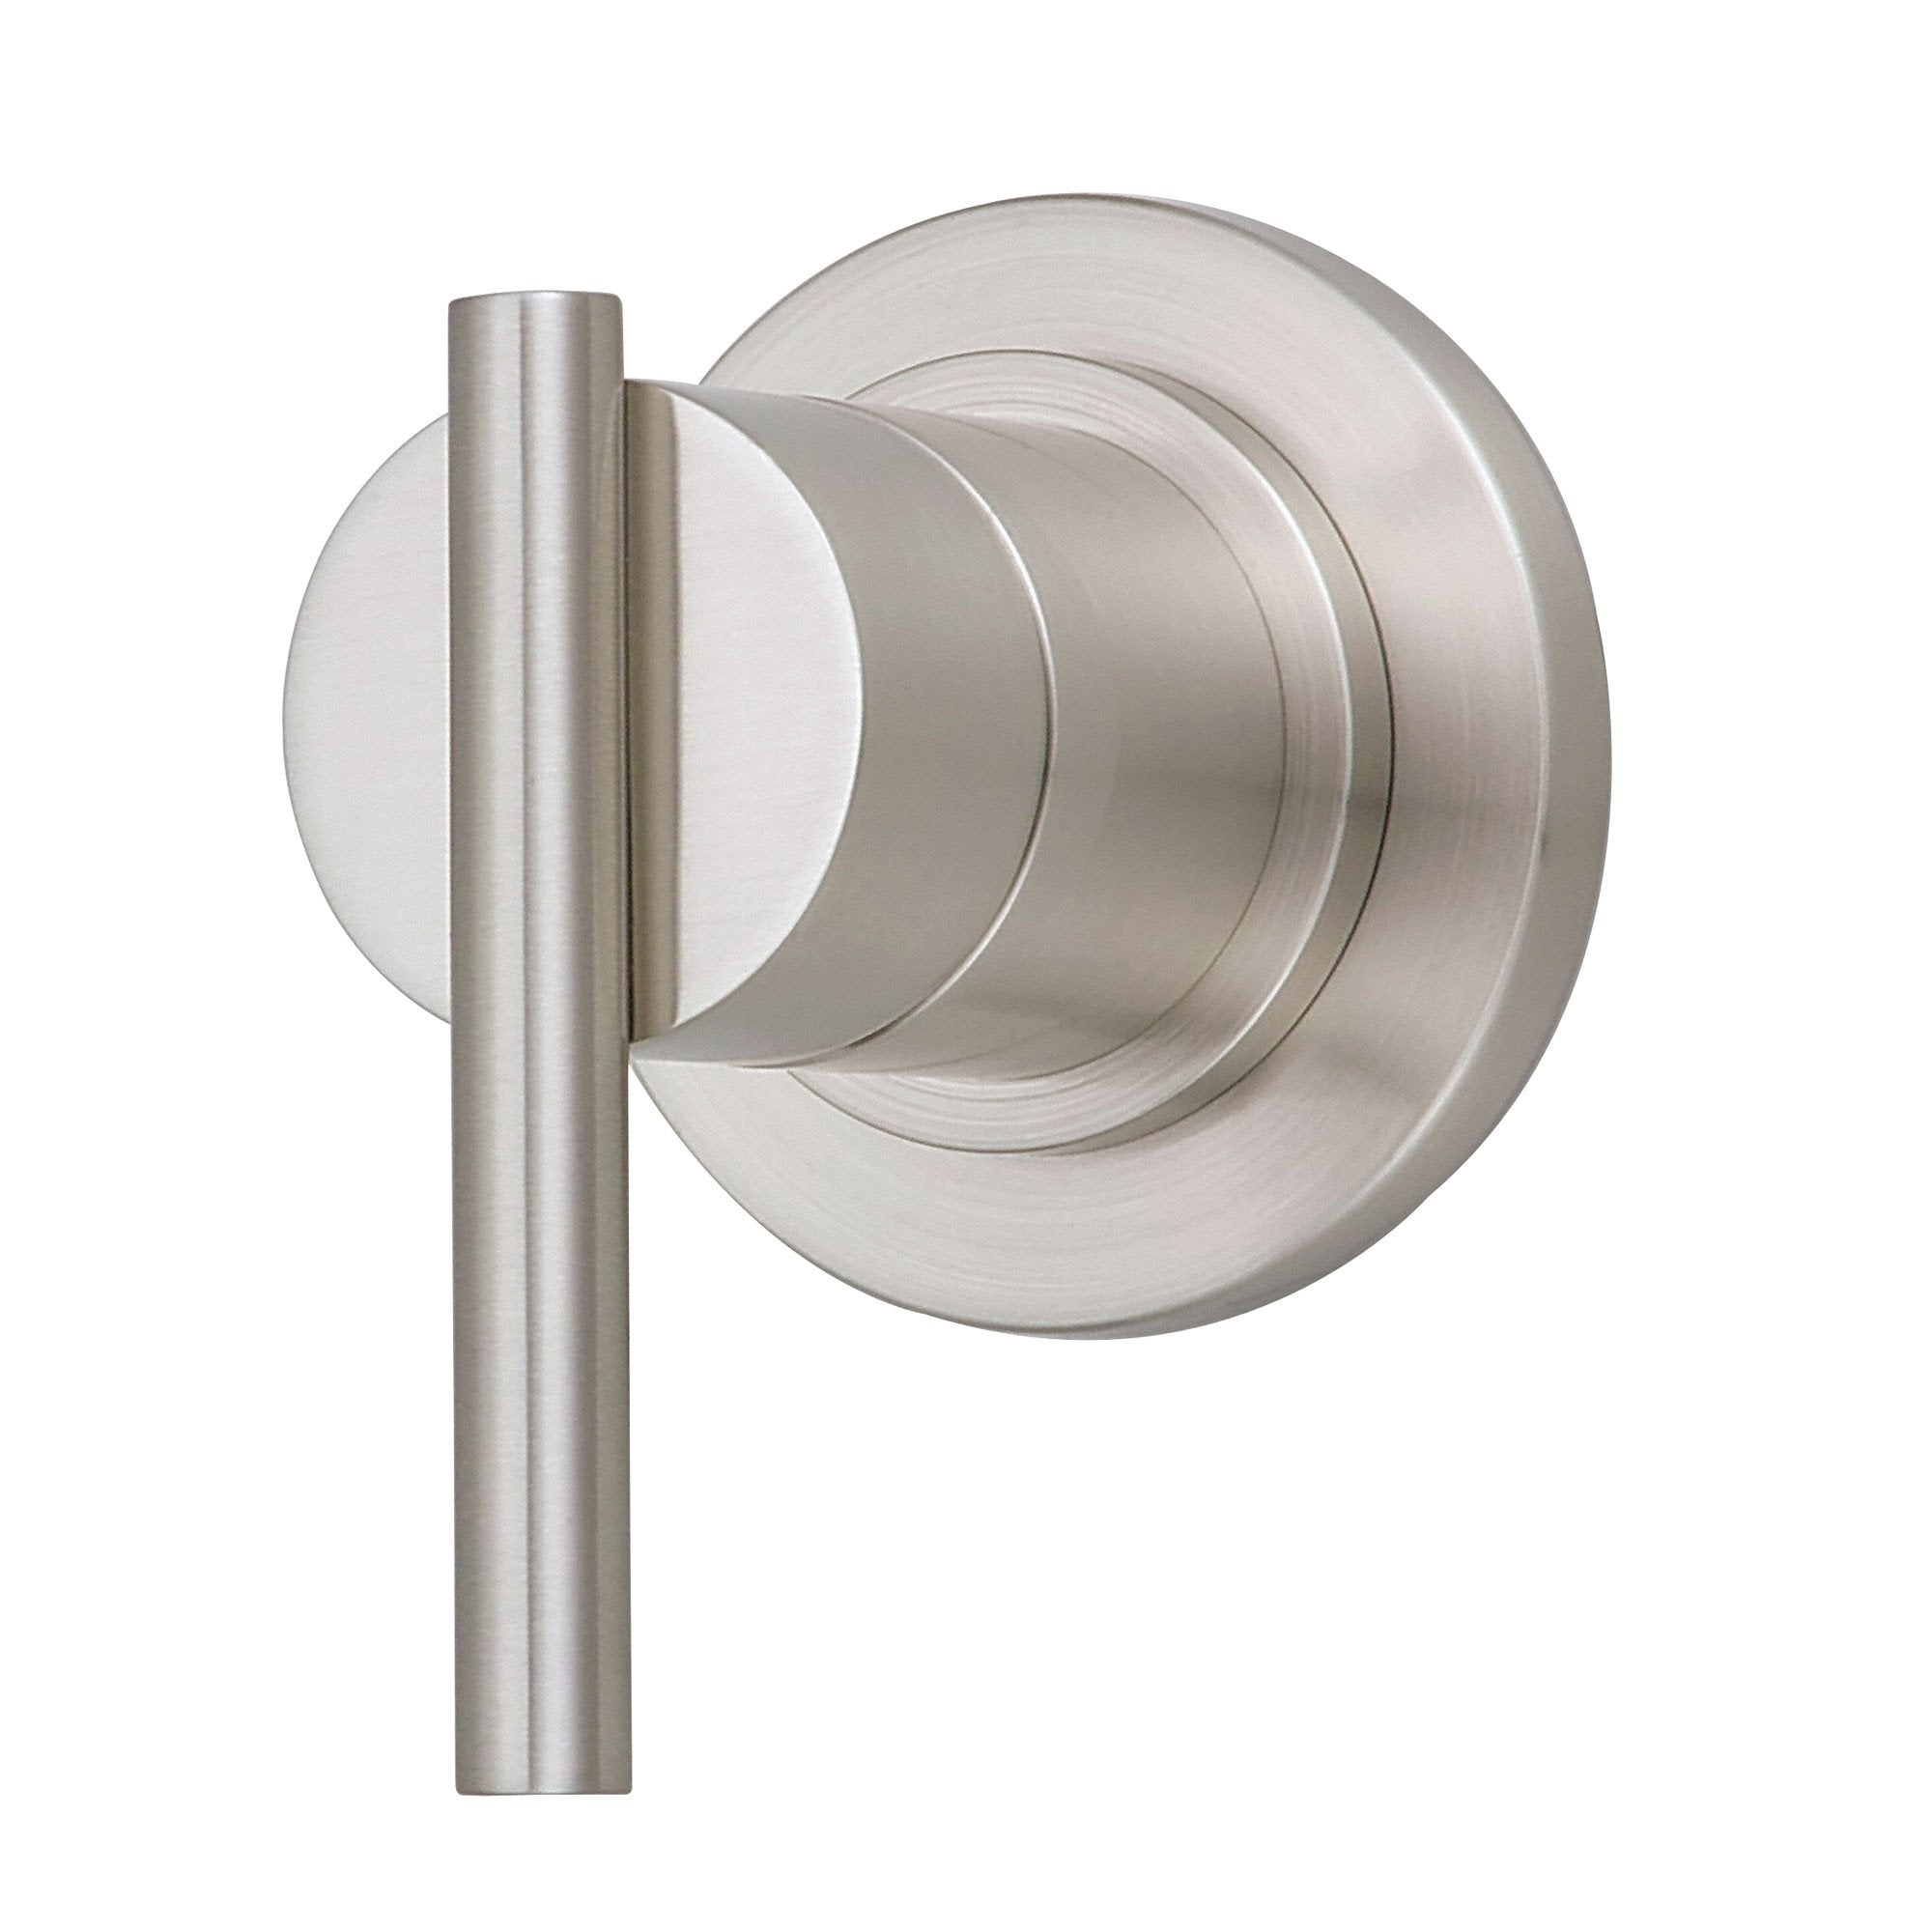 Danze Parma Brushed Nickel 1 Handle Volume Control 4-Port Shower Diverter INCLUDES Rough-in Valve